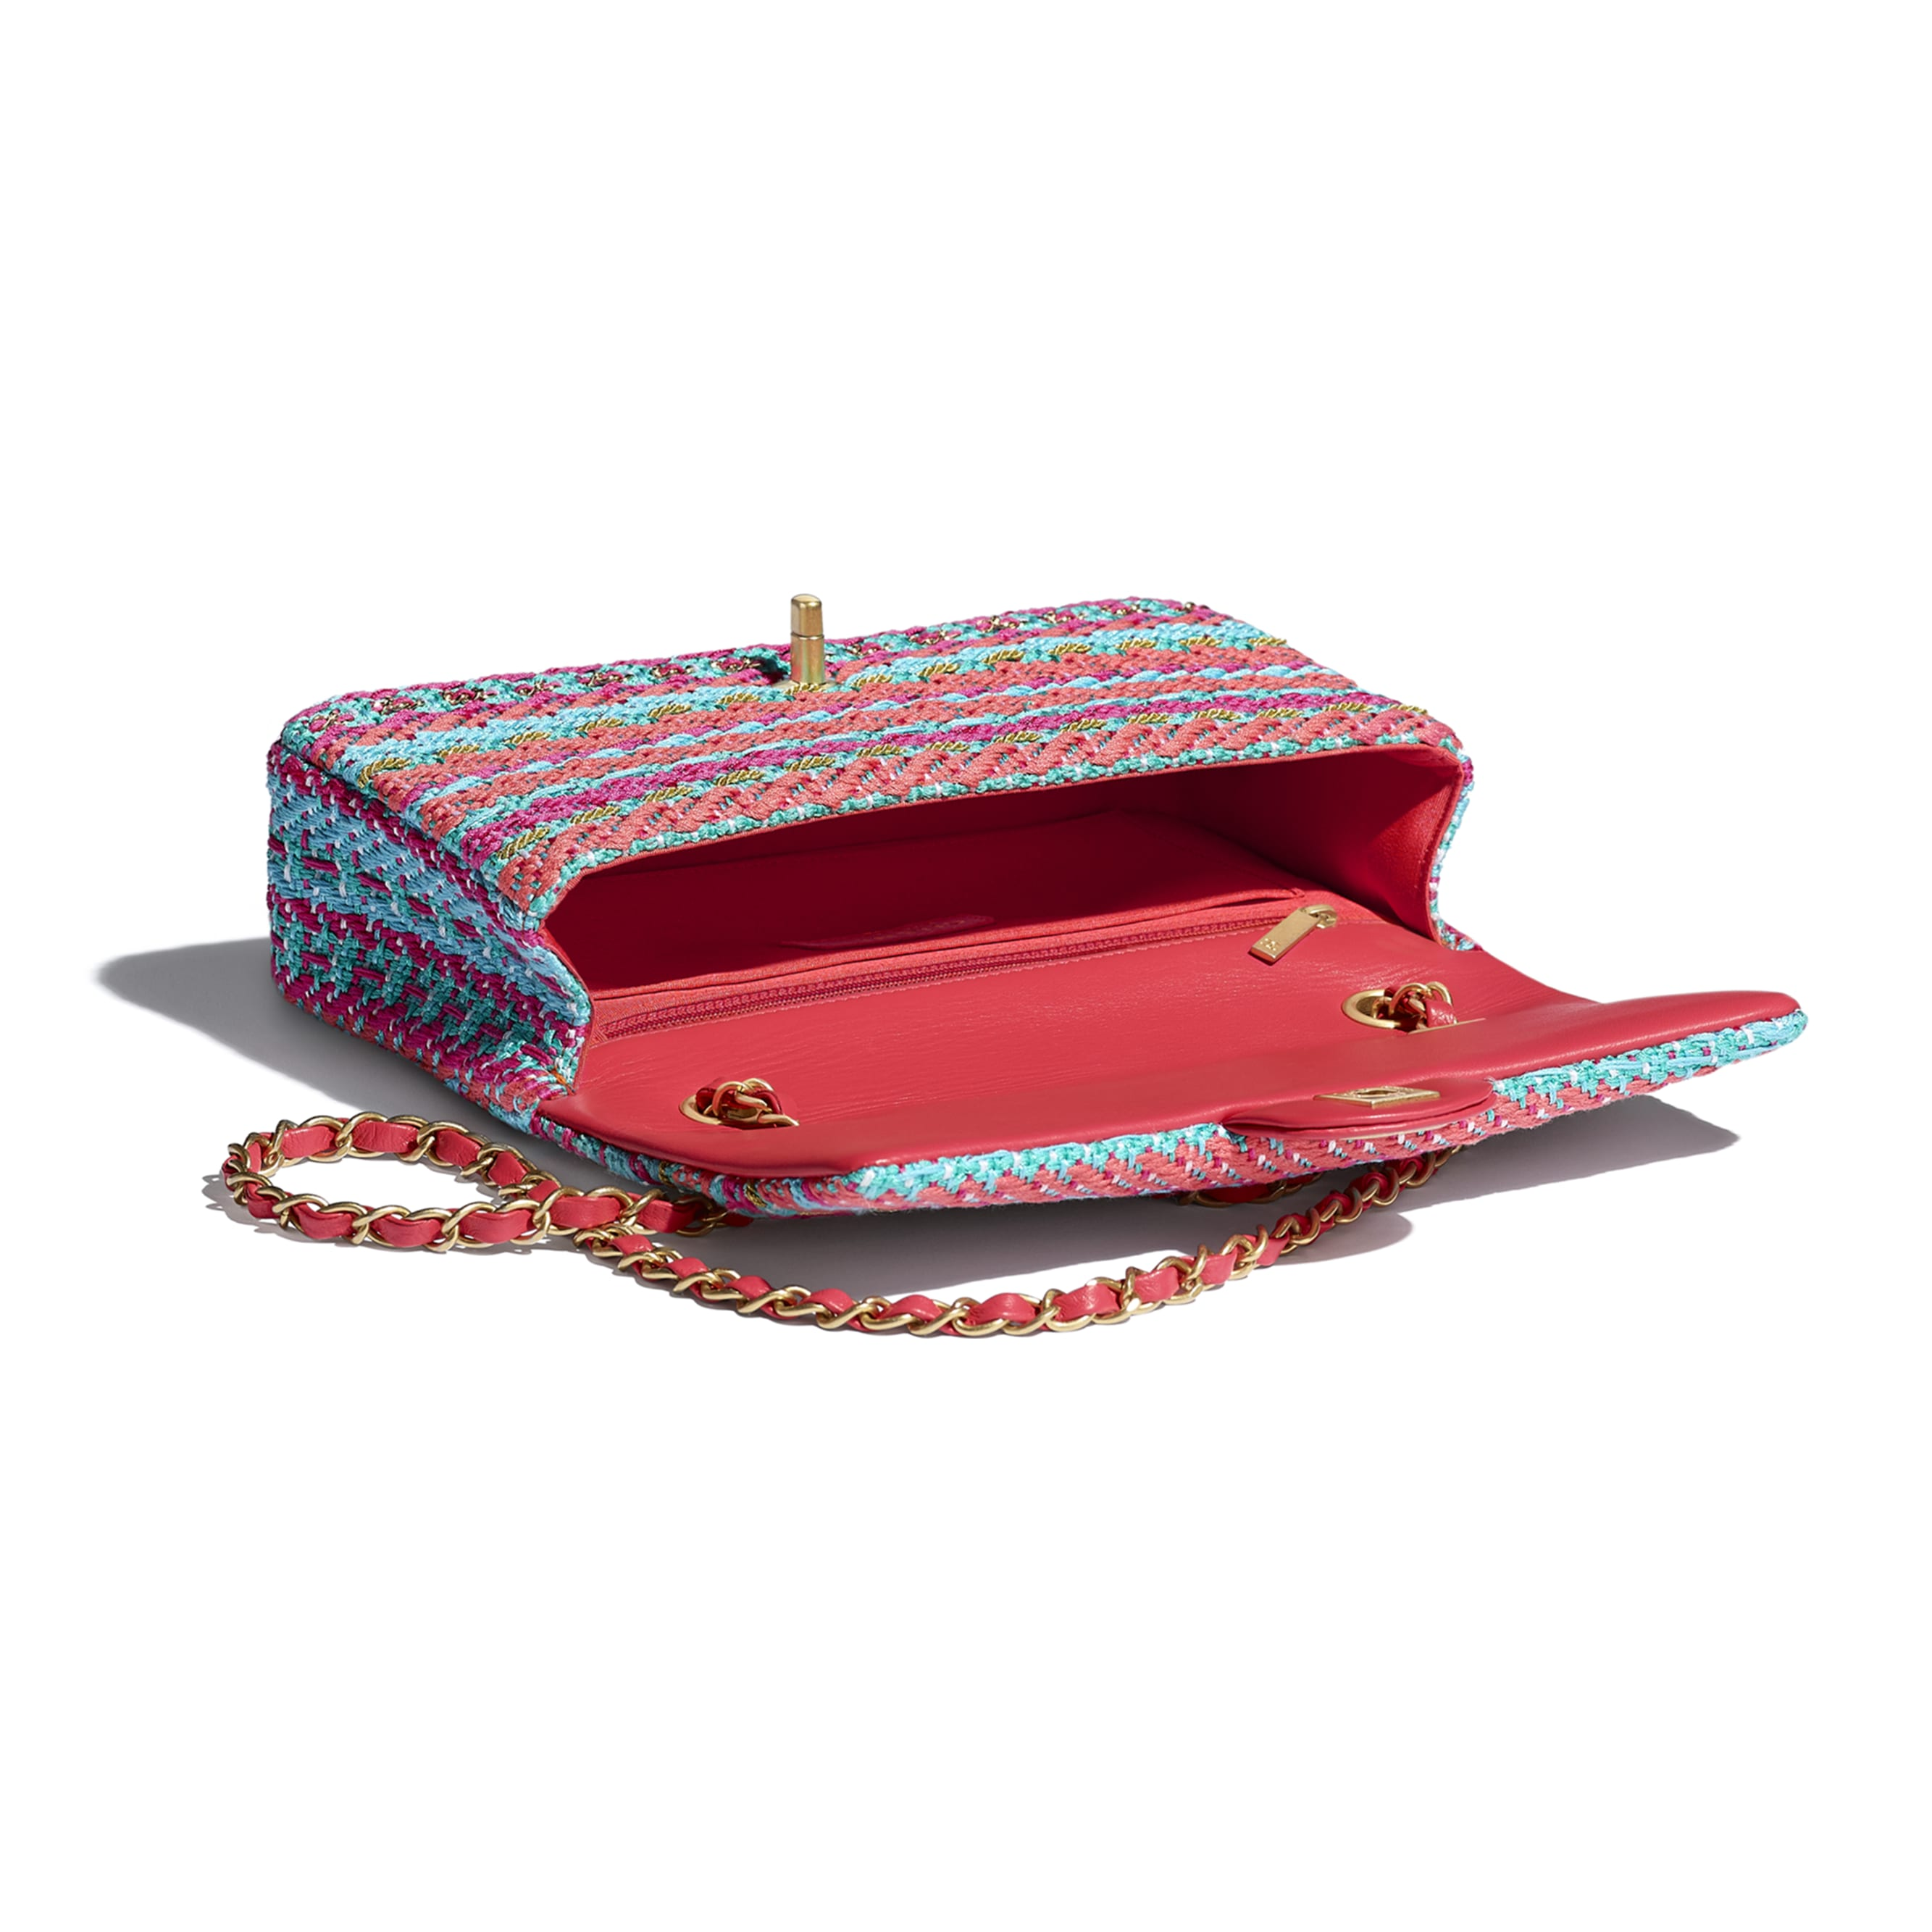 Flap Bag - Red, Fuchsia & Blue - Cotton, Mixed Fibers & Gold-Tone Metal - CHANEL - Other view - see standard sized version